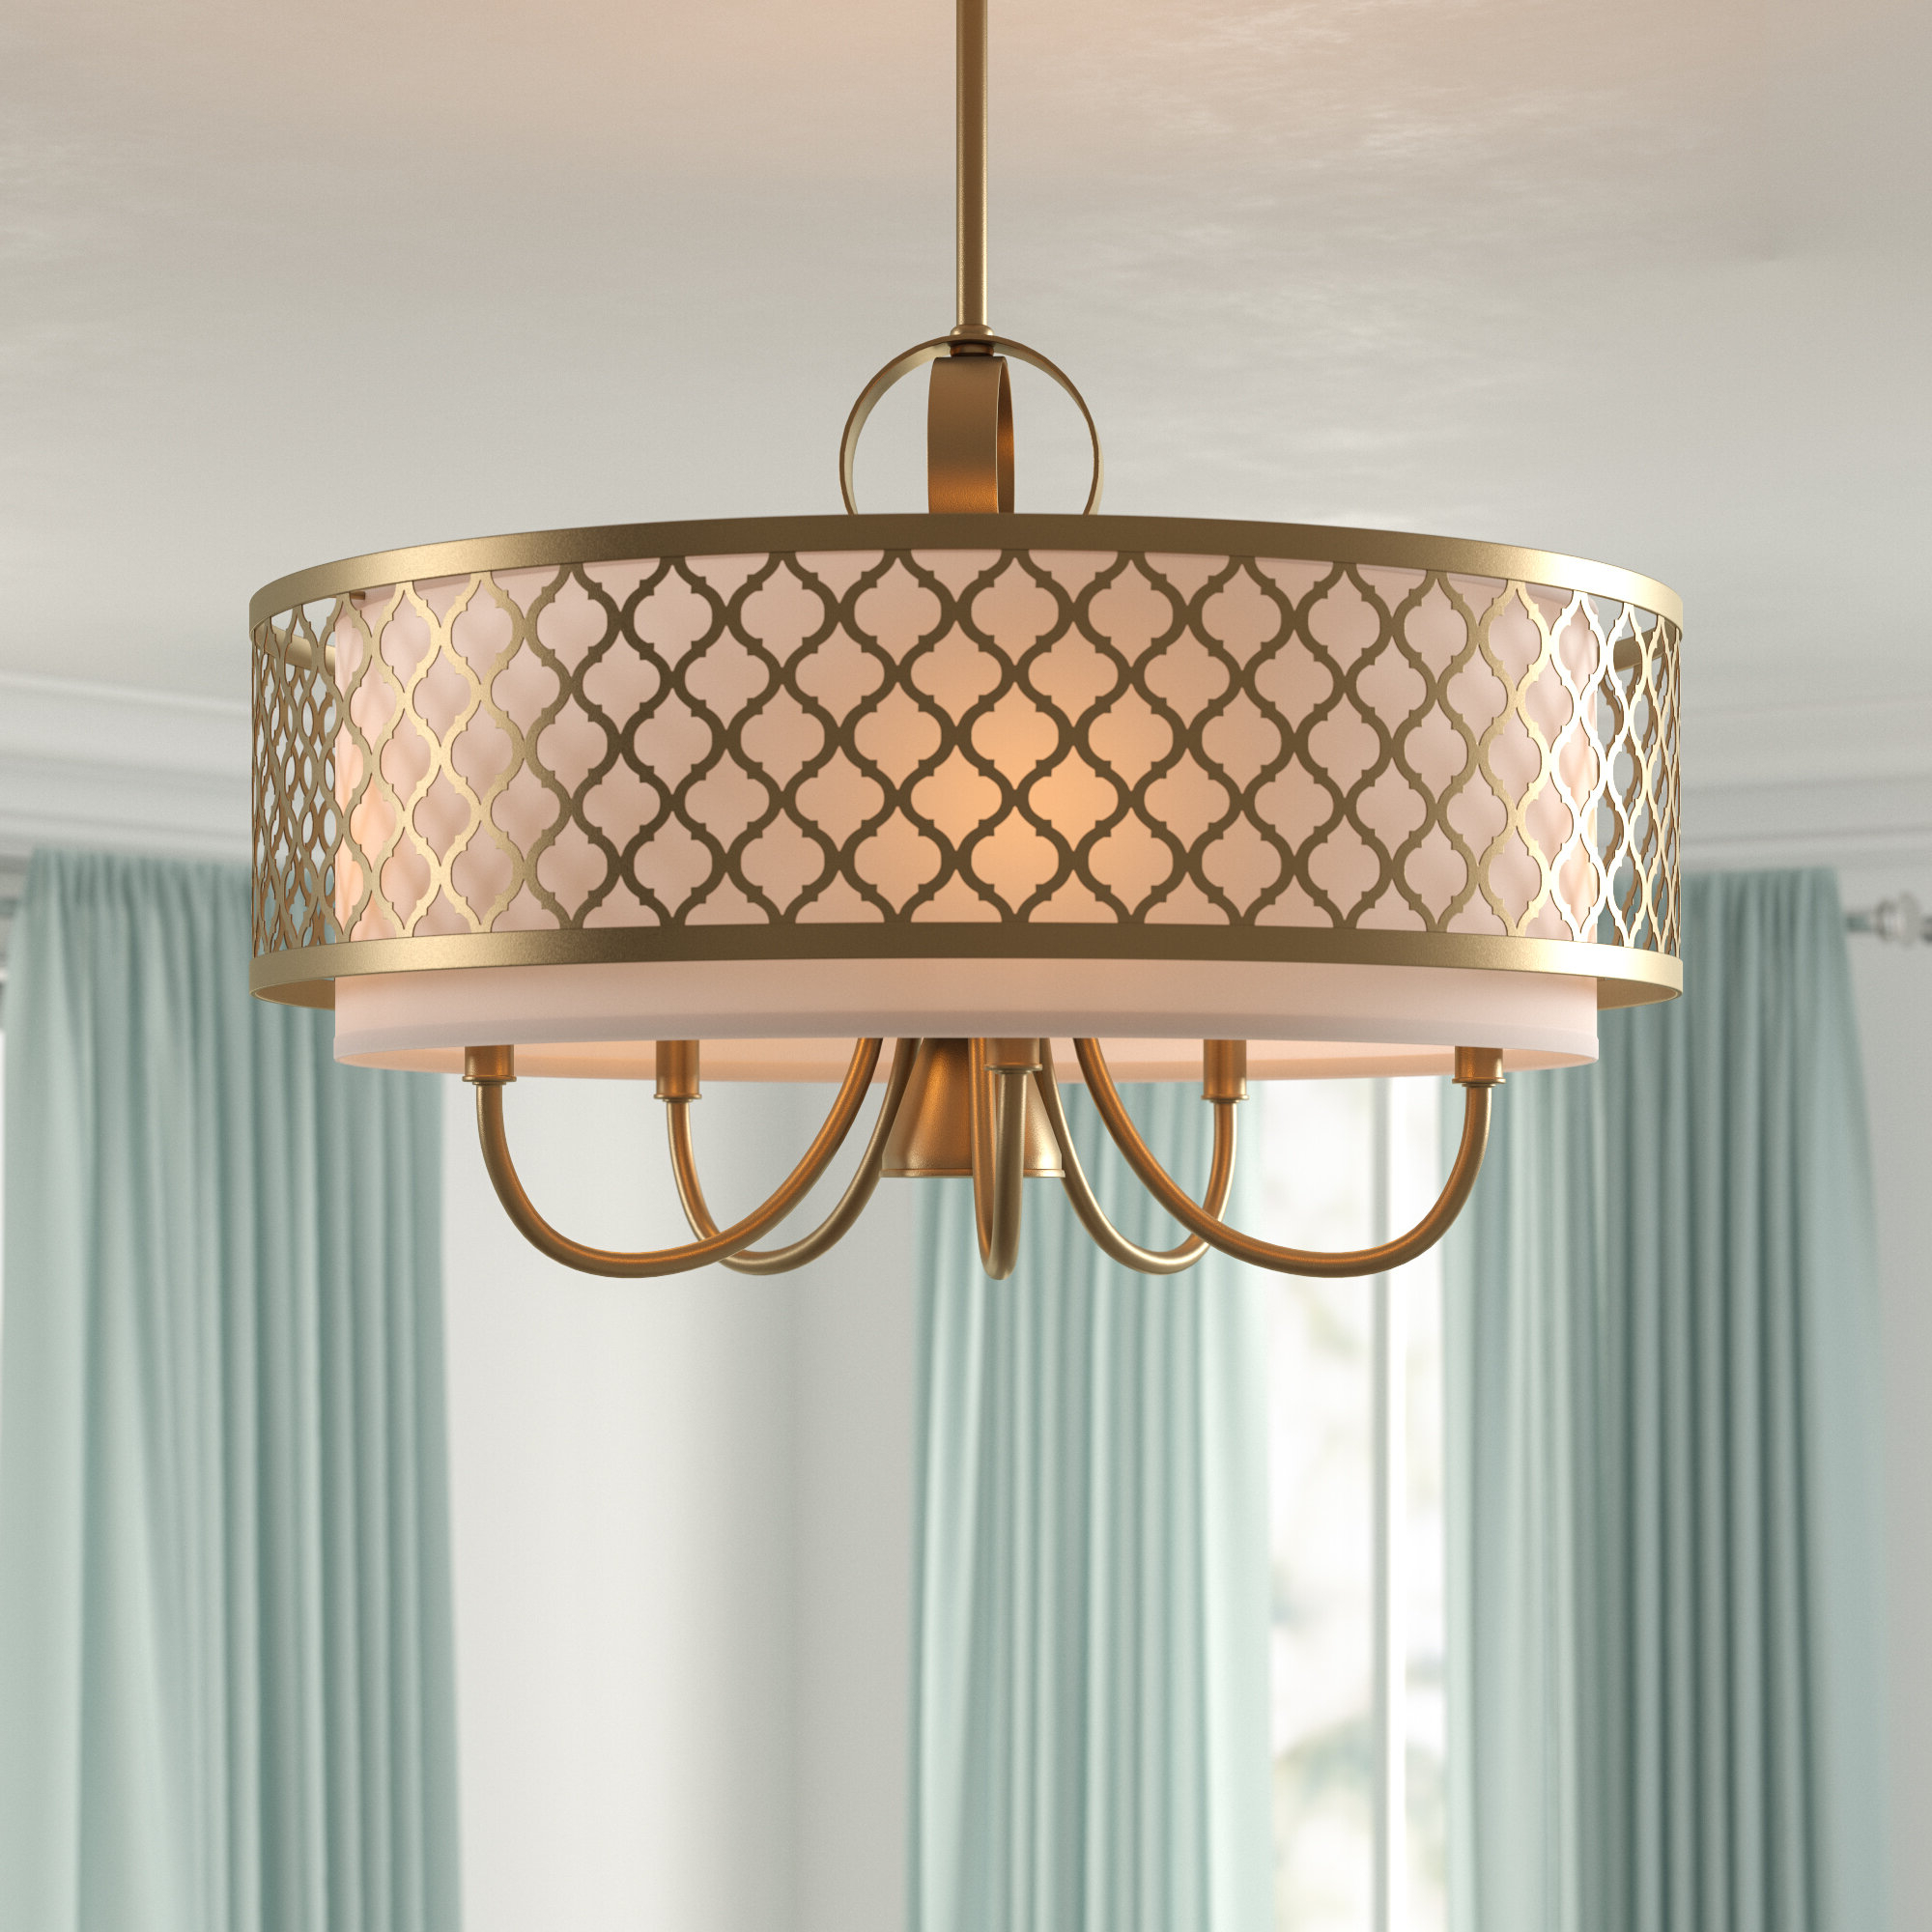 2020 Abel 5 Light Drum Chandeliers With Tymvou 6 Light Drum Chandelier (View 8 of 25)